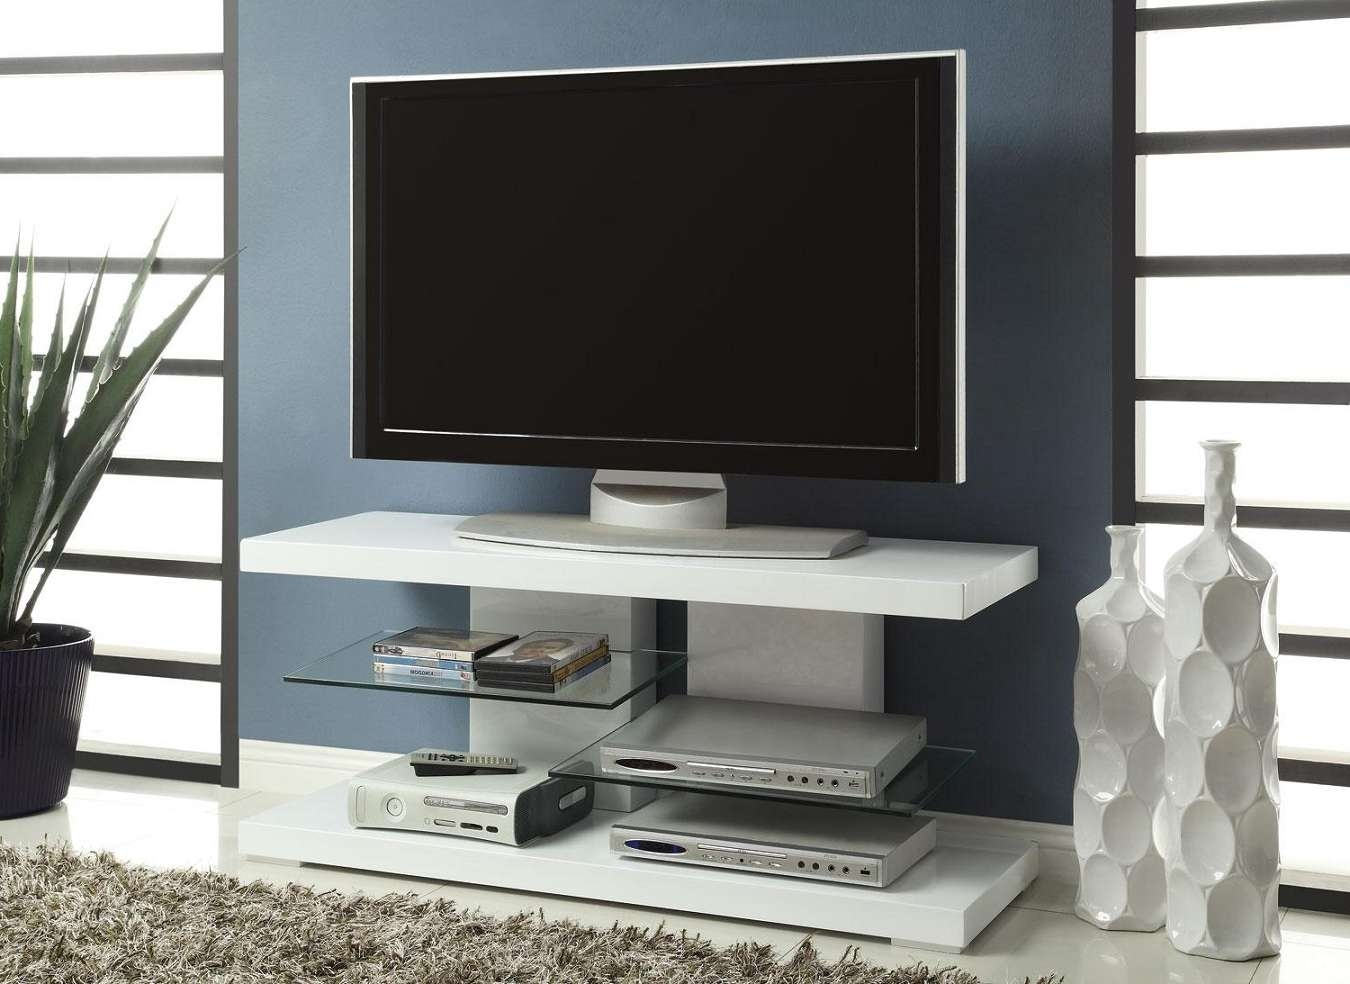 White Painted Plywood Flat Screen Tv Stand With Tempered Glass Regarding Contemporary Tv Stands For Flat Screens (View 14 of 15)